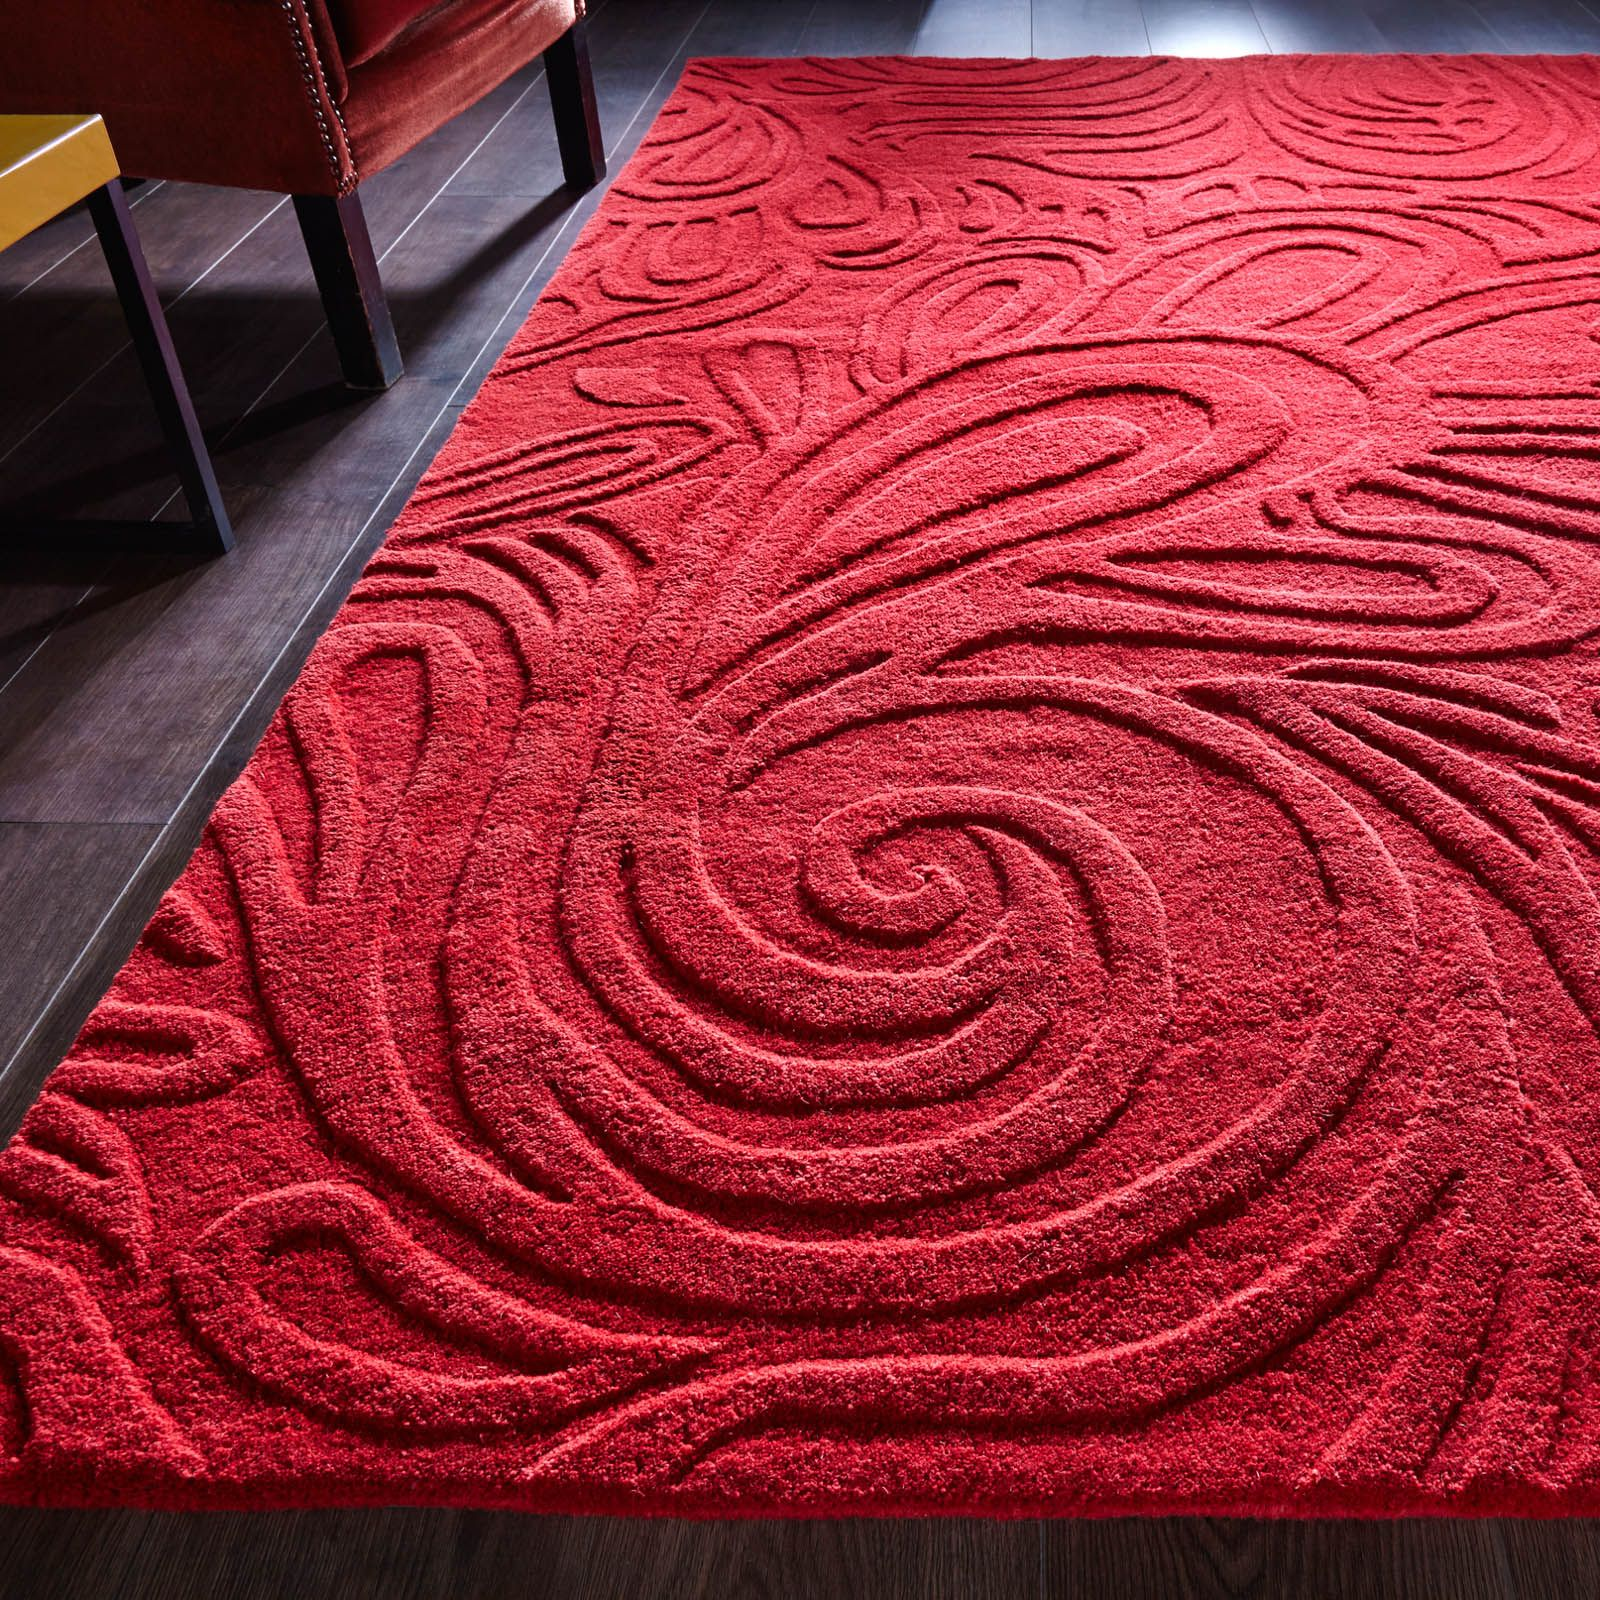 Relief Paisley Rugs in Red